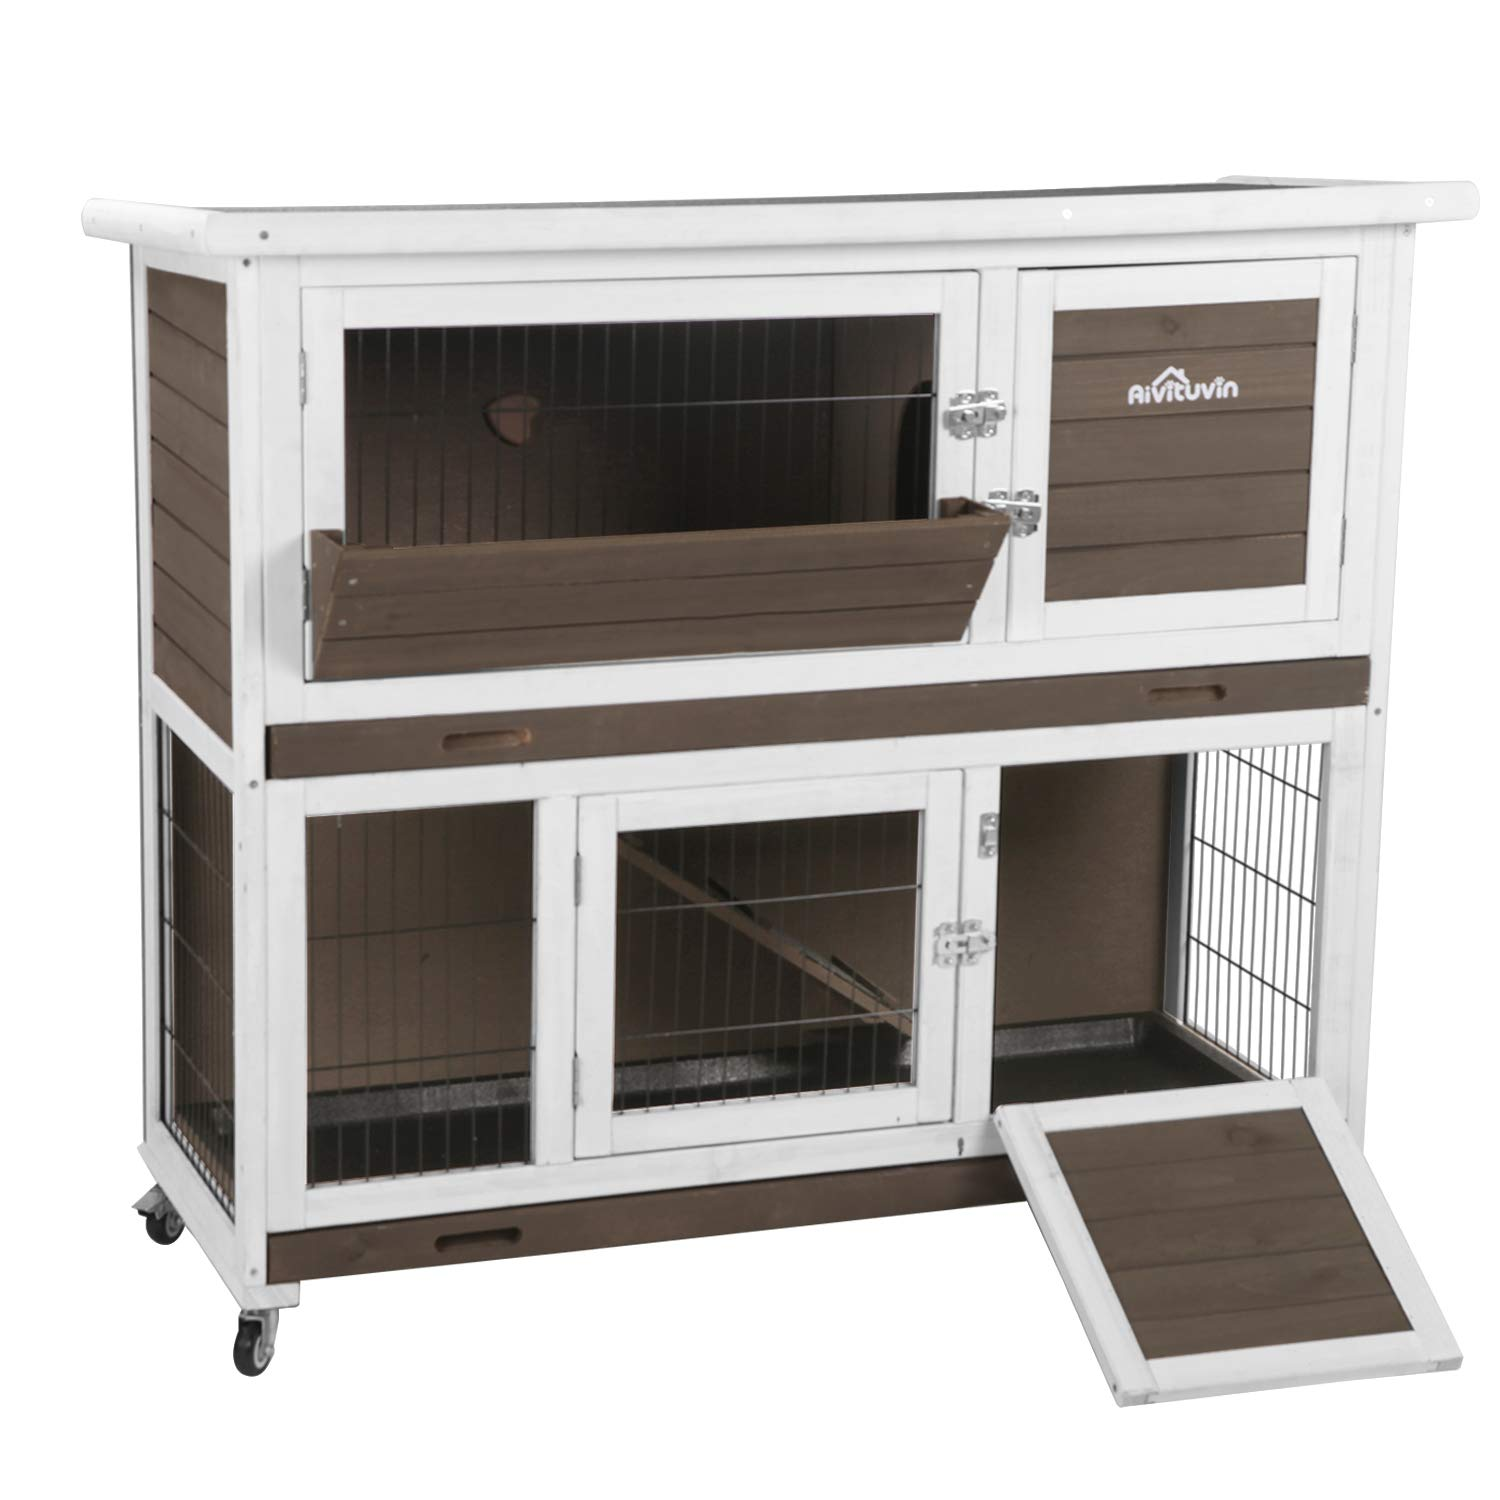 Aivituvin 47'' Rabbit Hutch Outdoor and Indoor 2- Story Bunny cage on Wheels - 2 Deep No Leakage Pull Out Tray by Aivituvin